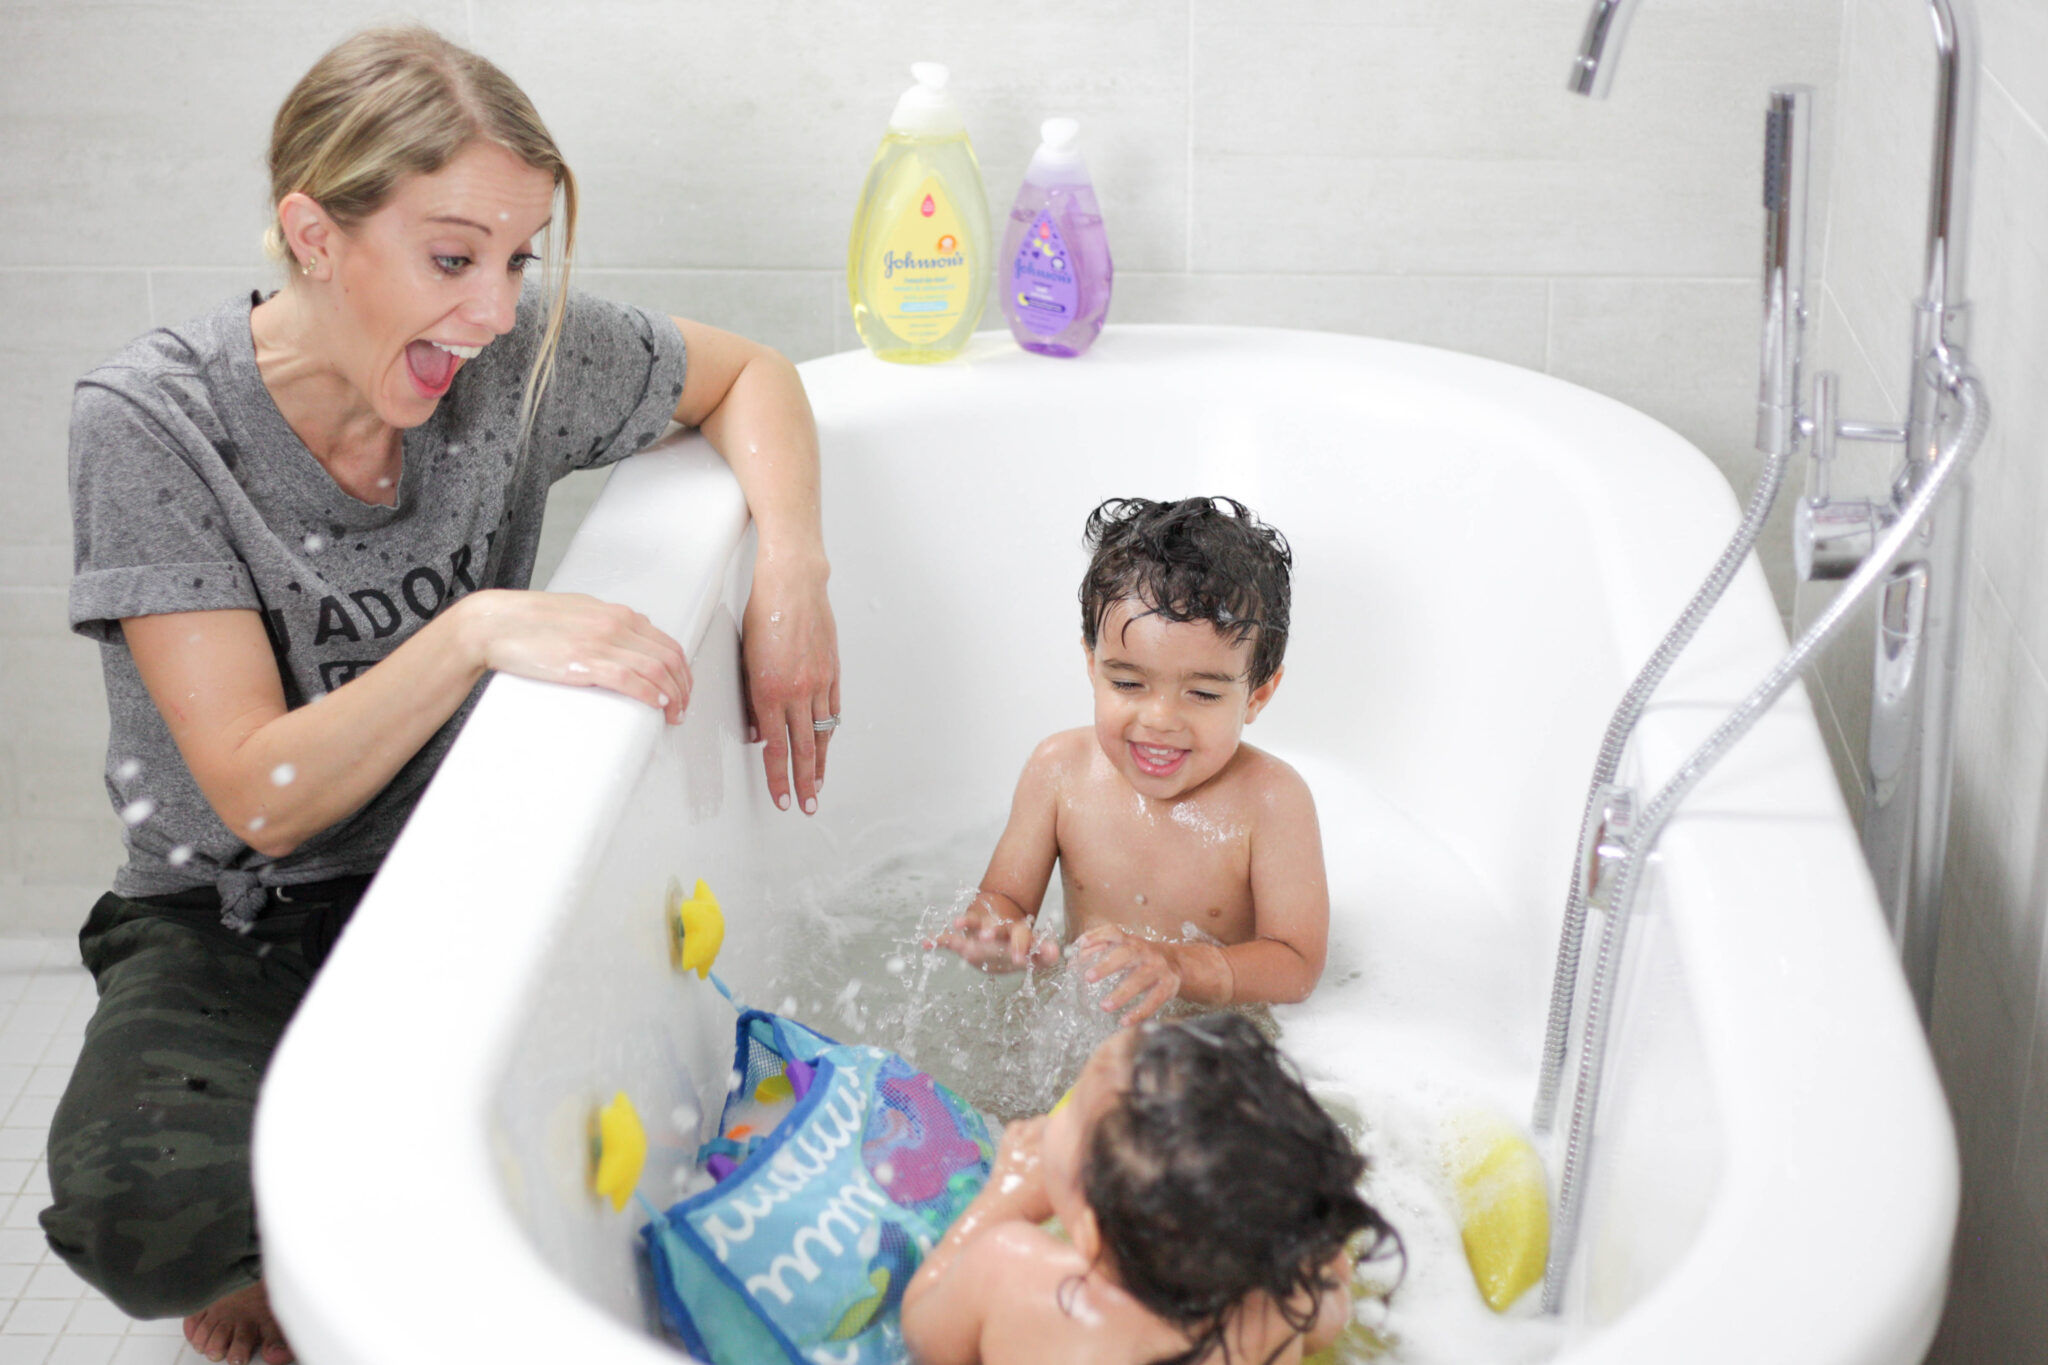 johnsons bedtime bath and head-to-toe wash